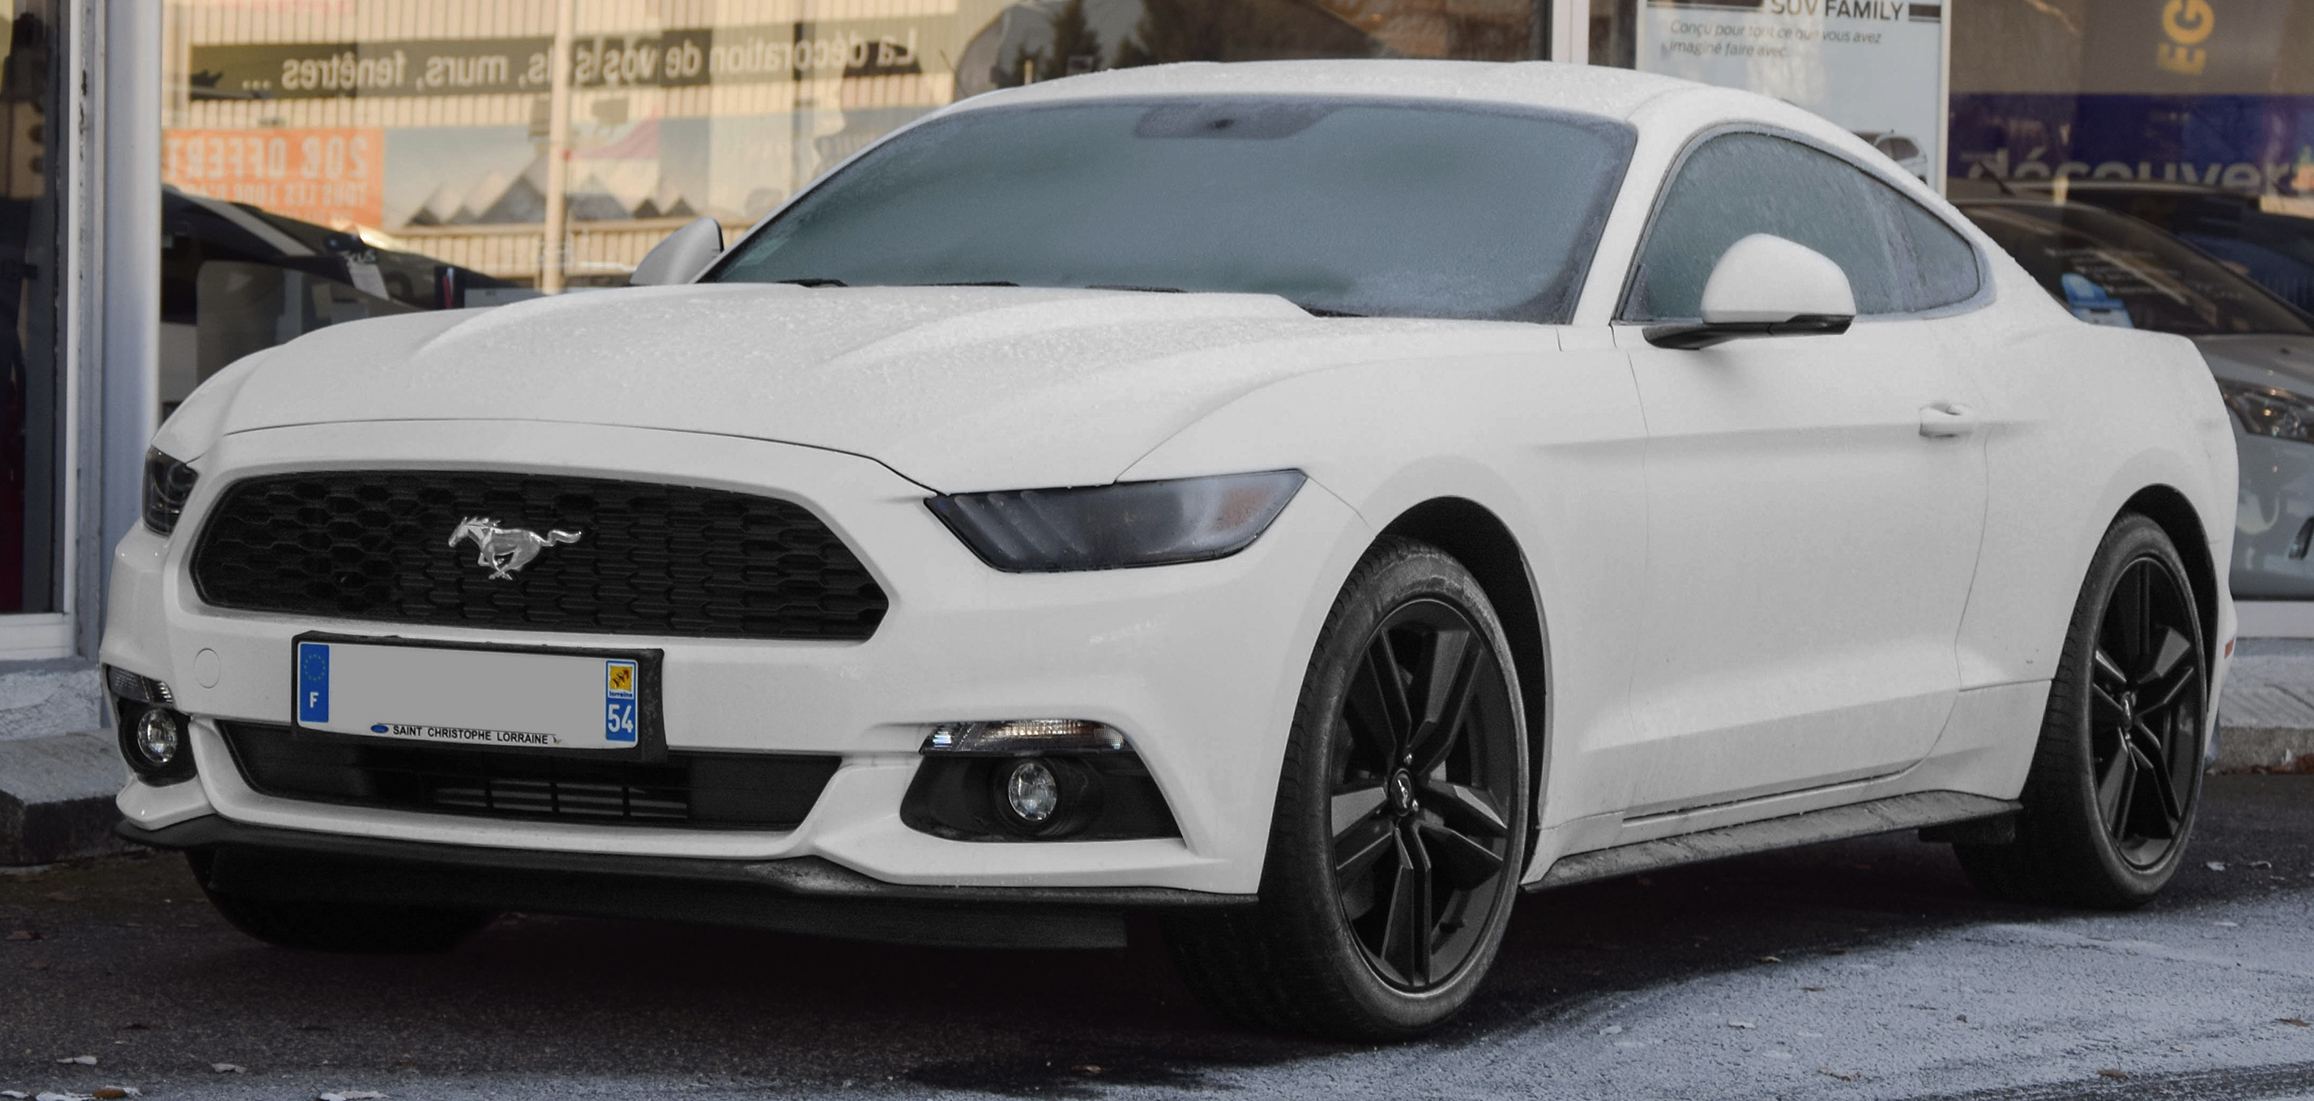 FileFord Mustang White 2017